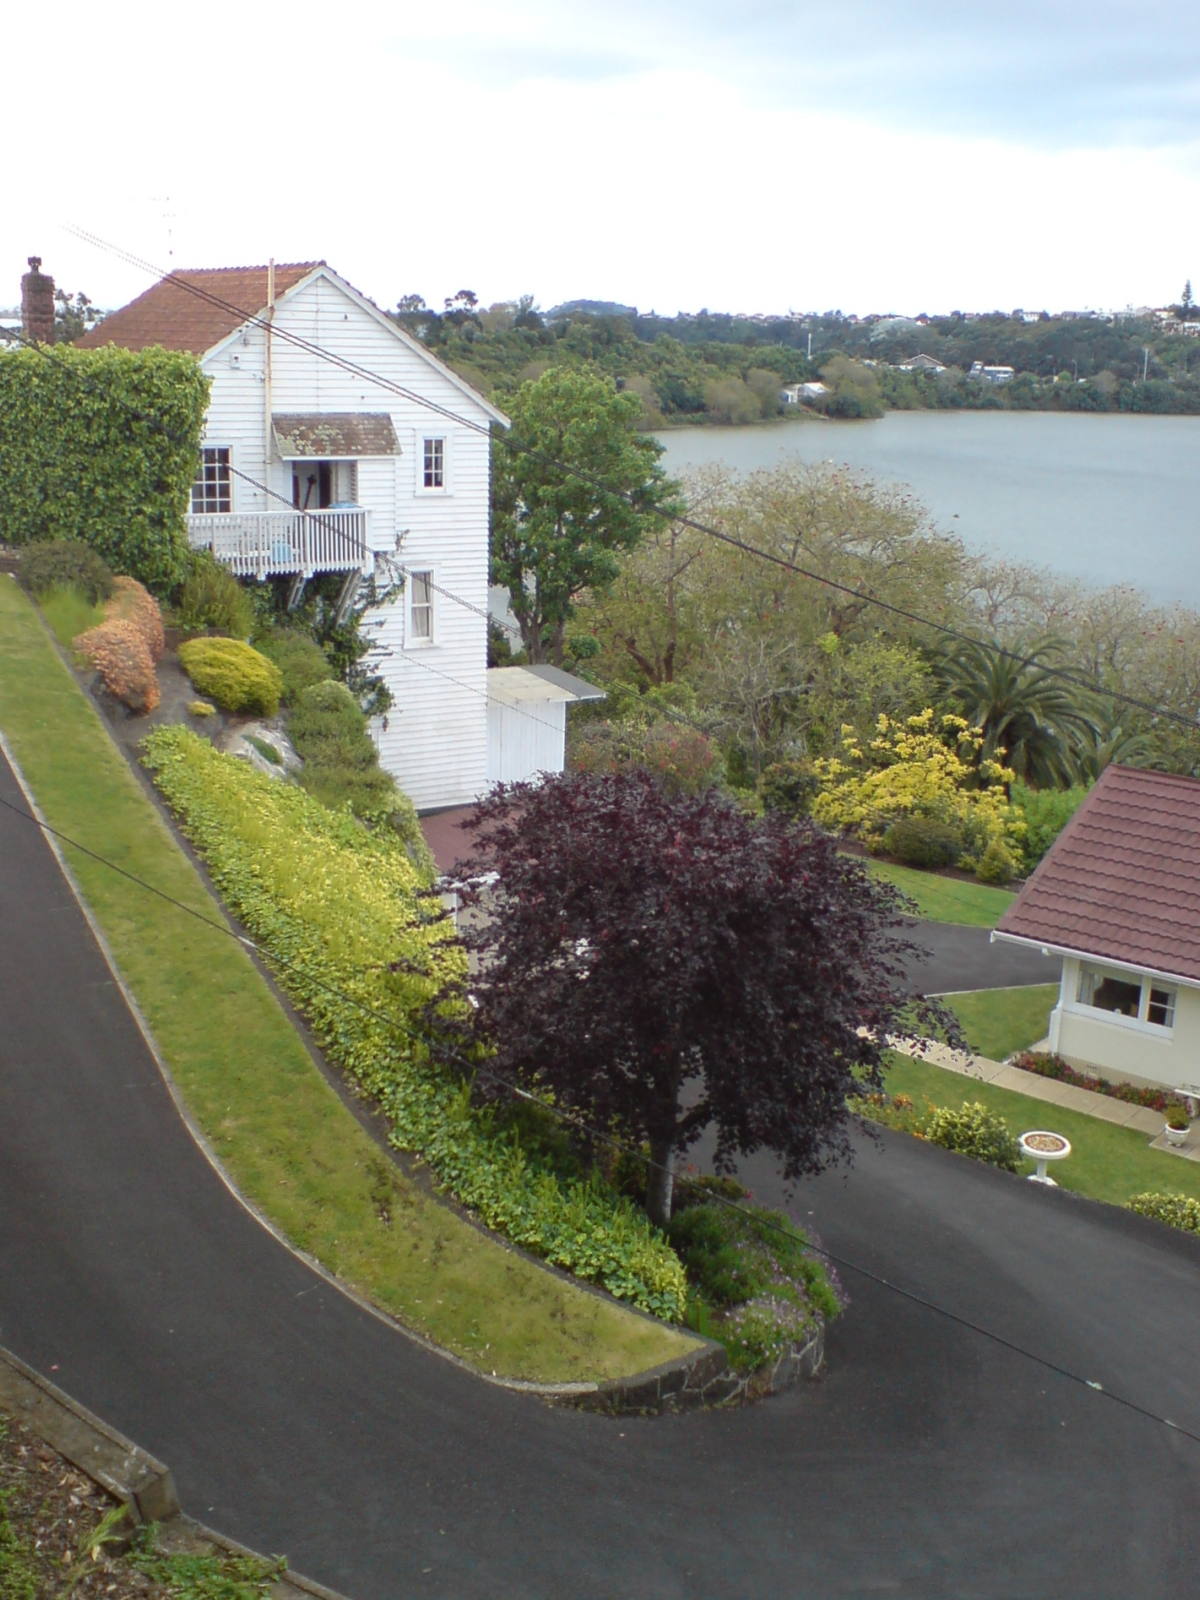 File:Remuera House With Steep Driveway